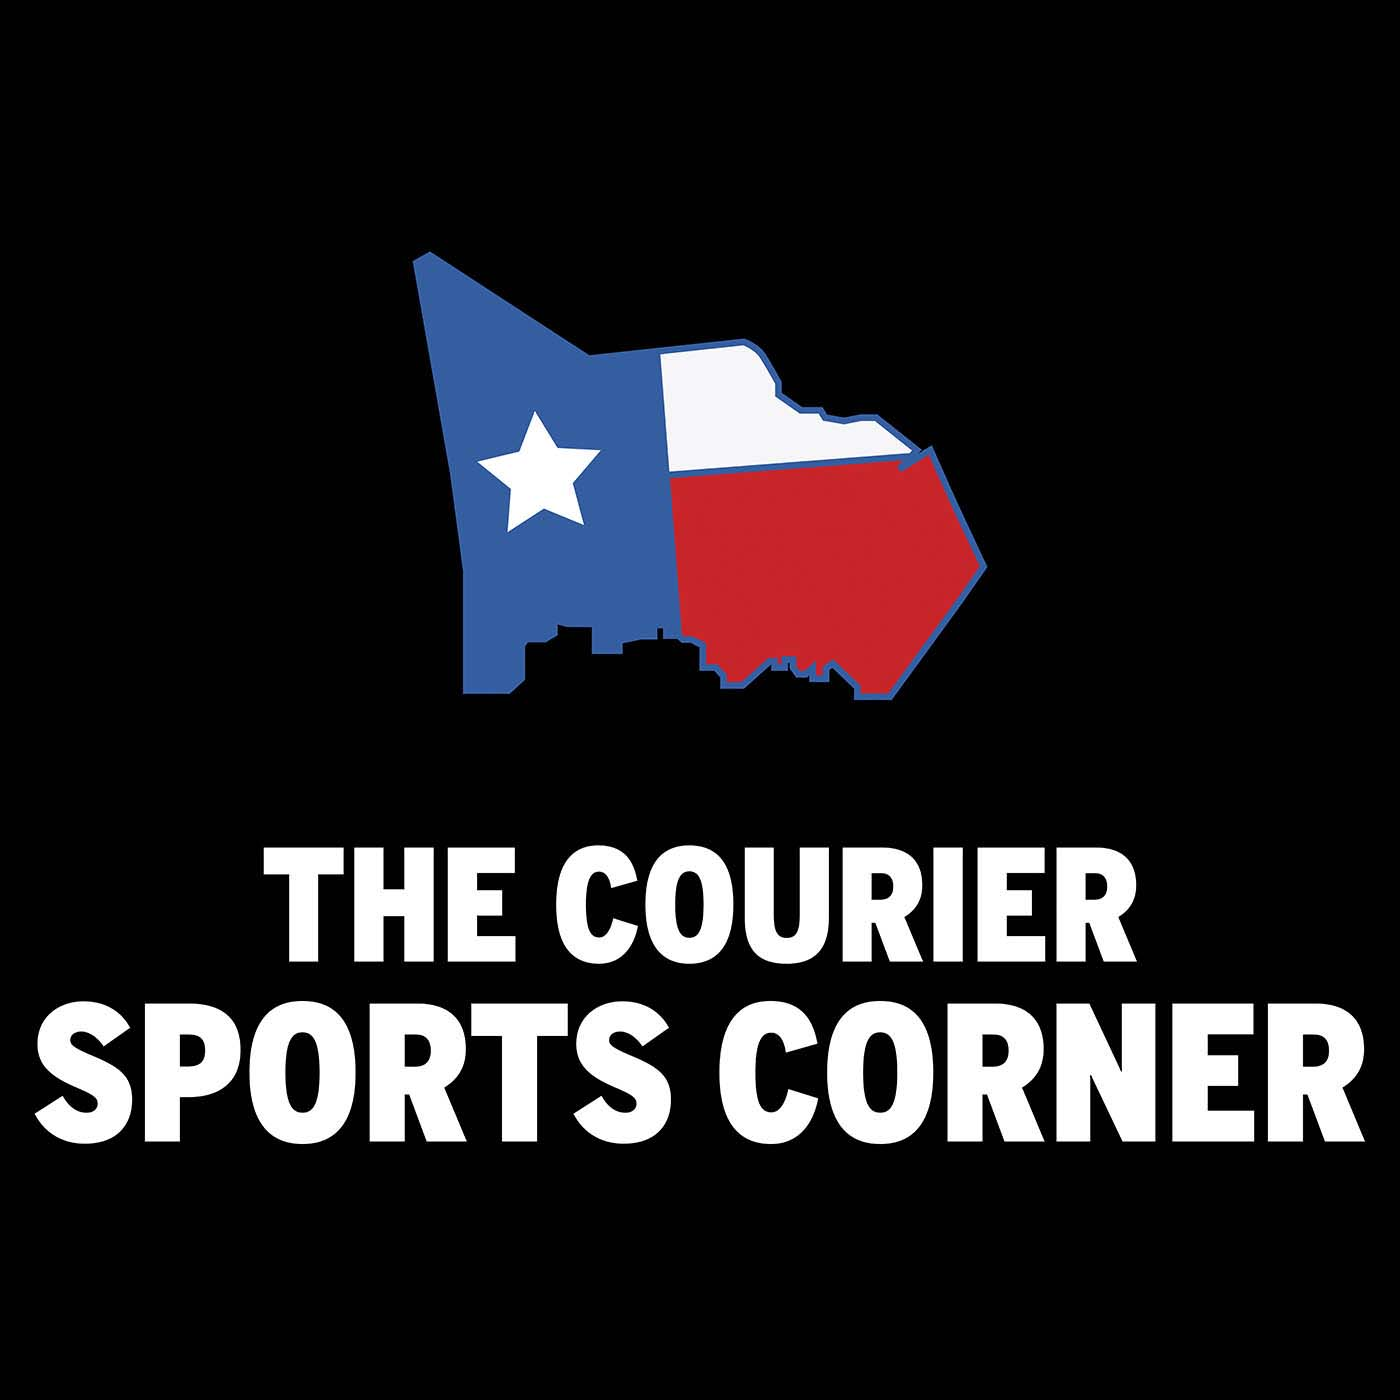 The Courier Sports Corner logo